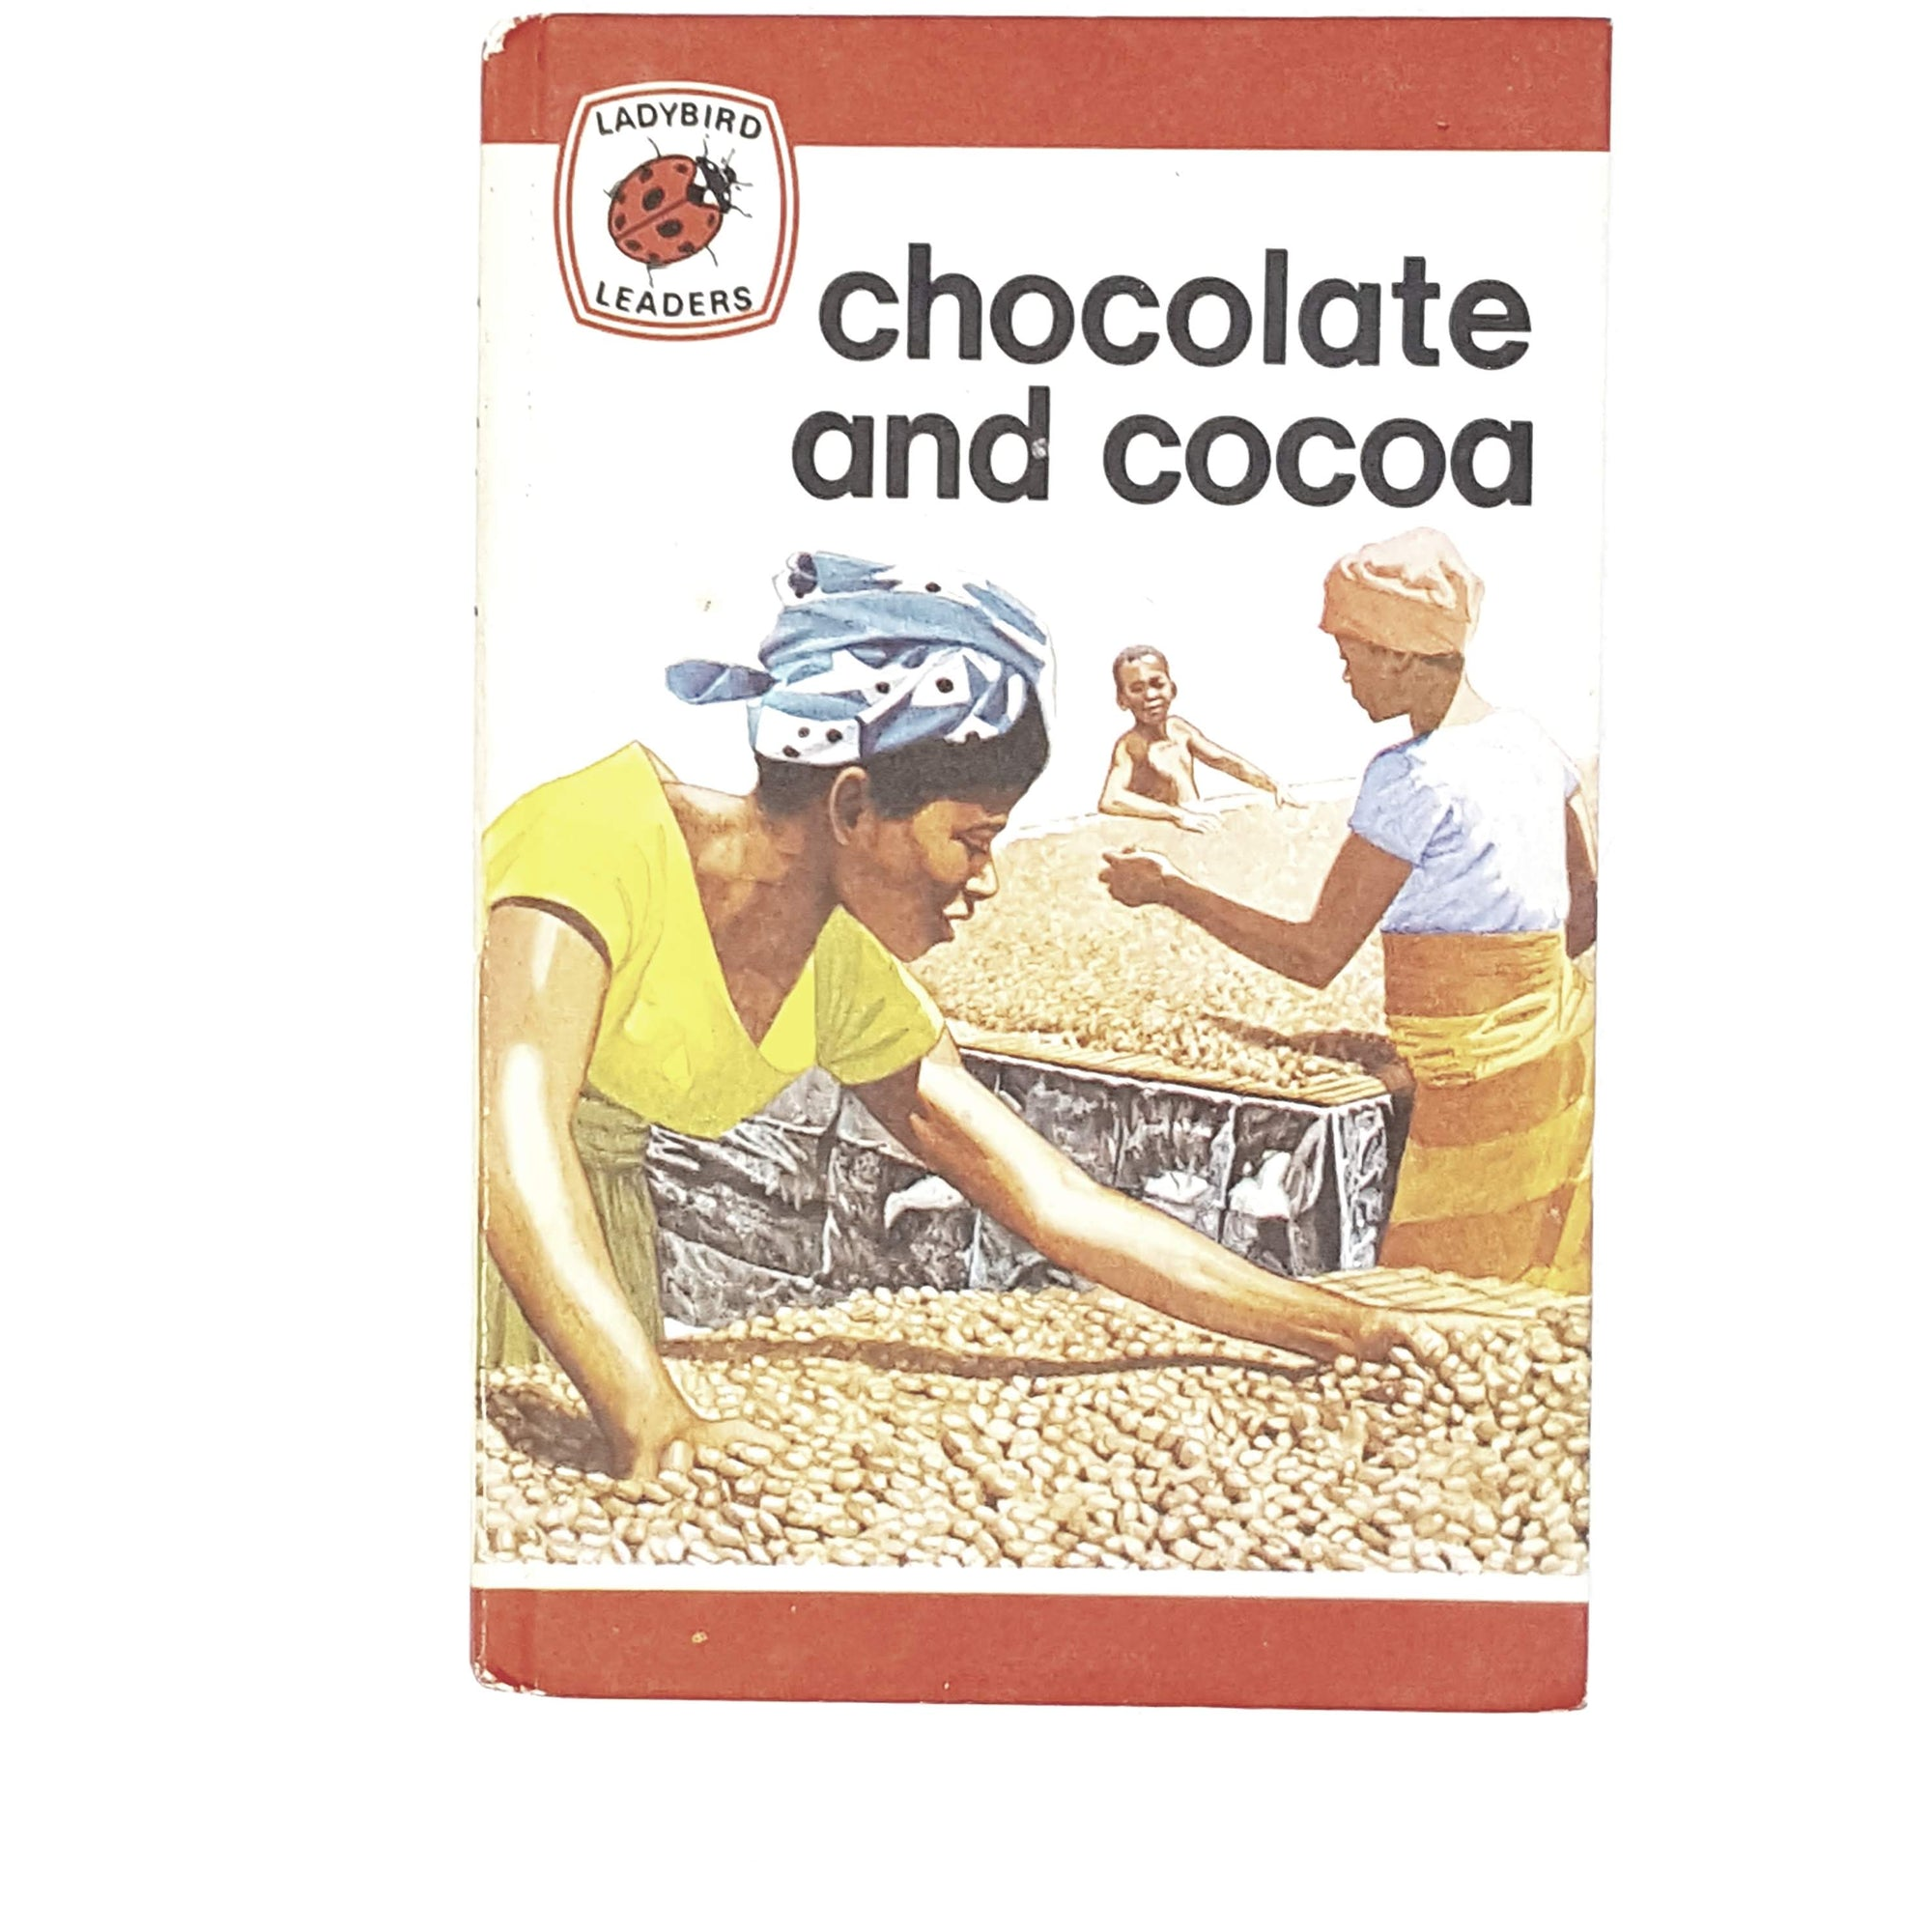 ladybird-leaders-chocolate-and-cocoa-1977-country-house-library